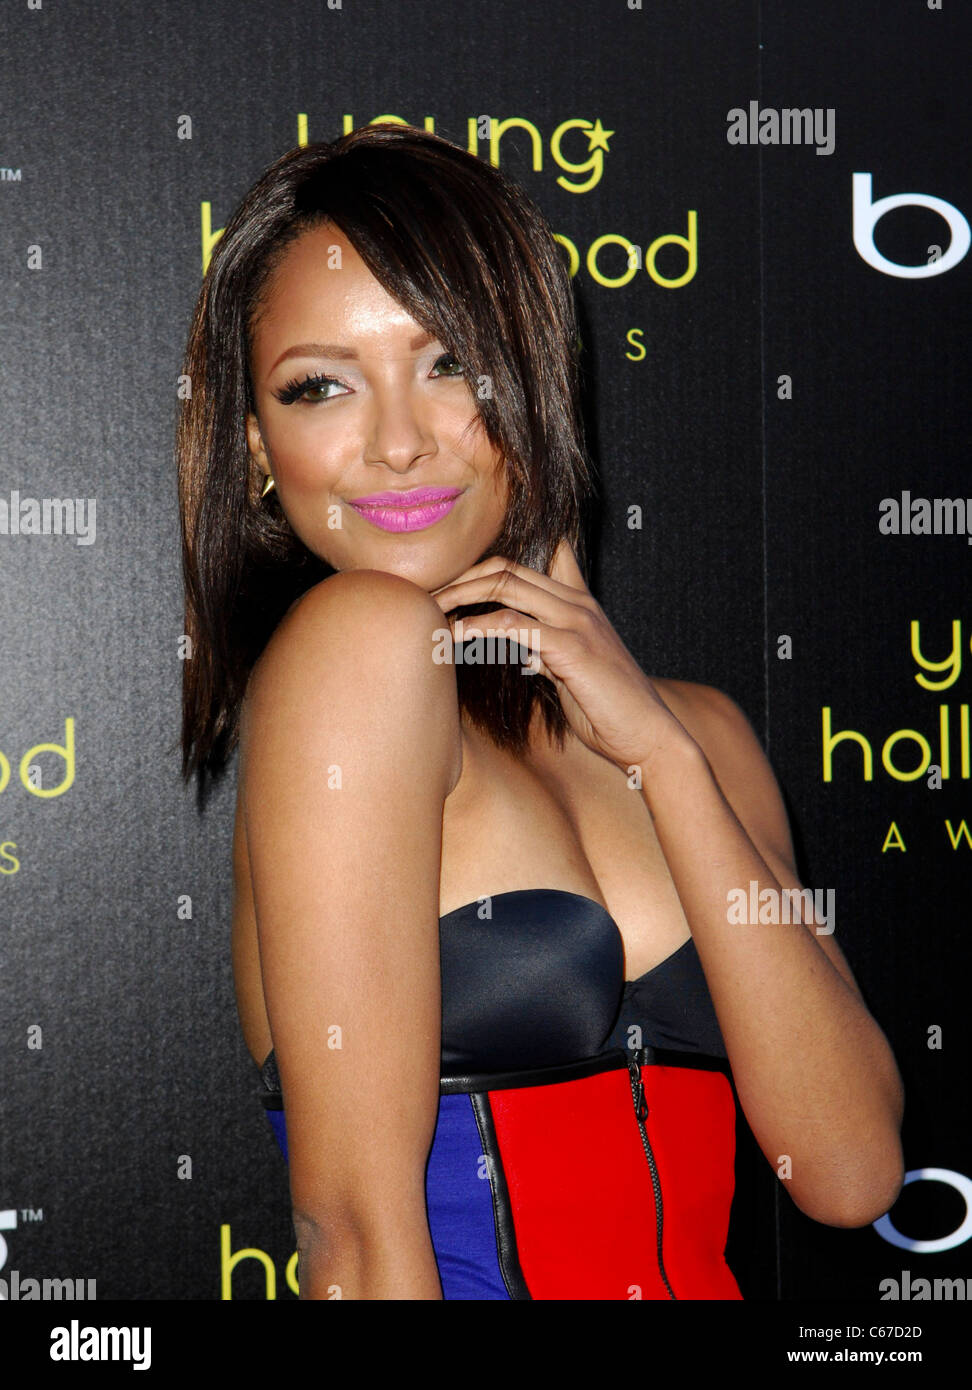 Kat Graham at arrivals for 13th Annual Young Hollywood Awards, Club Nokia, Los Angeles, CA May 20, 2011. Photo By: - Stock Image